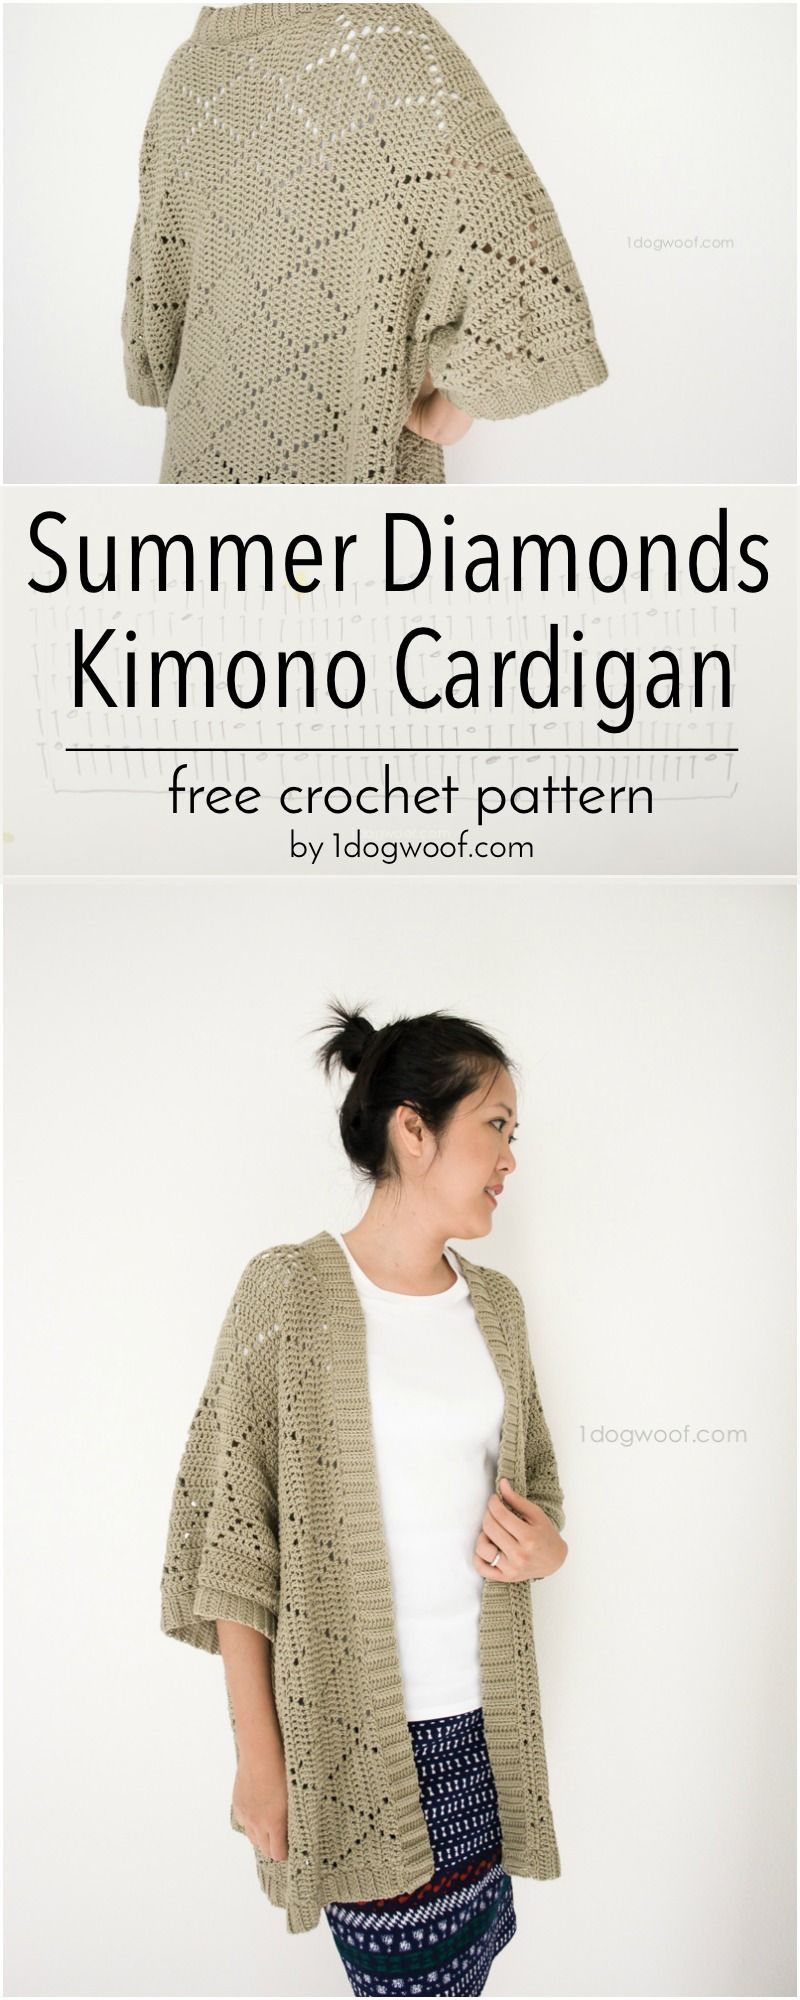 Summer diamonds kimono cardigan free crochet crochet and diamond free crochet pattern for a light summer cardigan featuring a simple diamond motif bankloansurffo Images